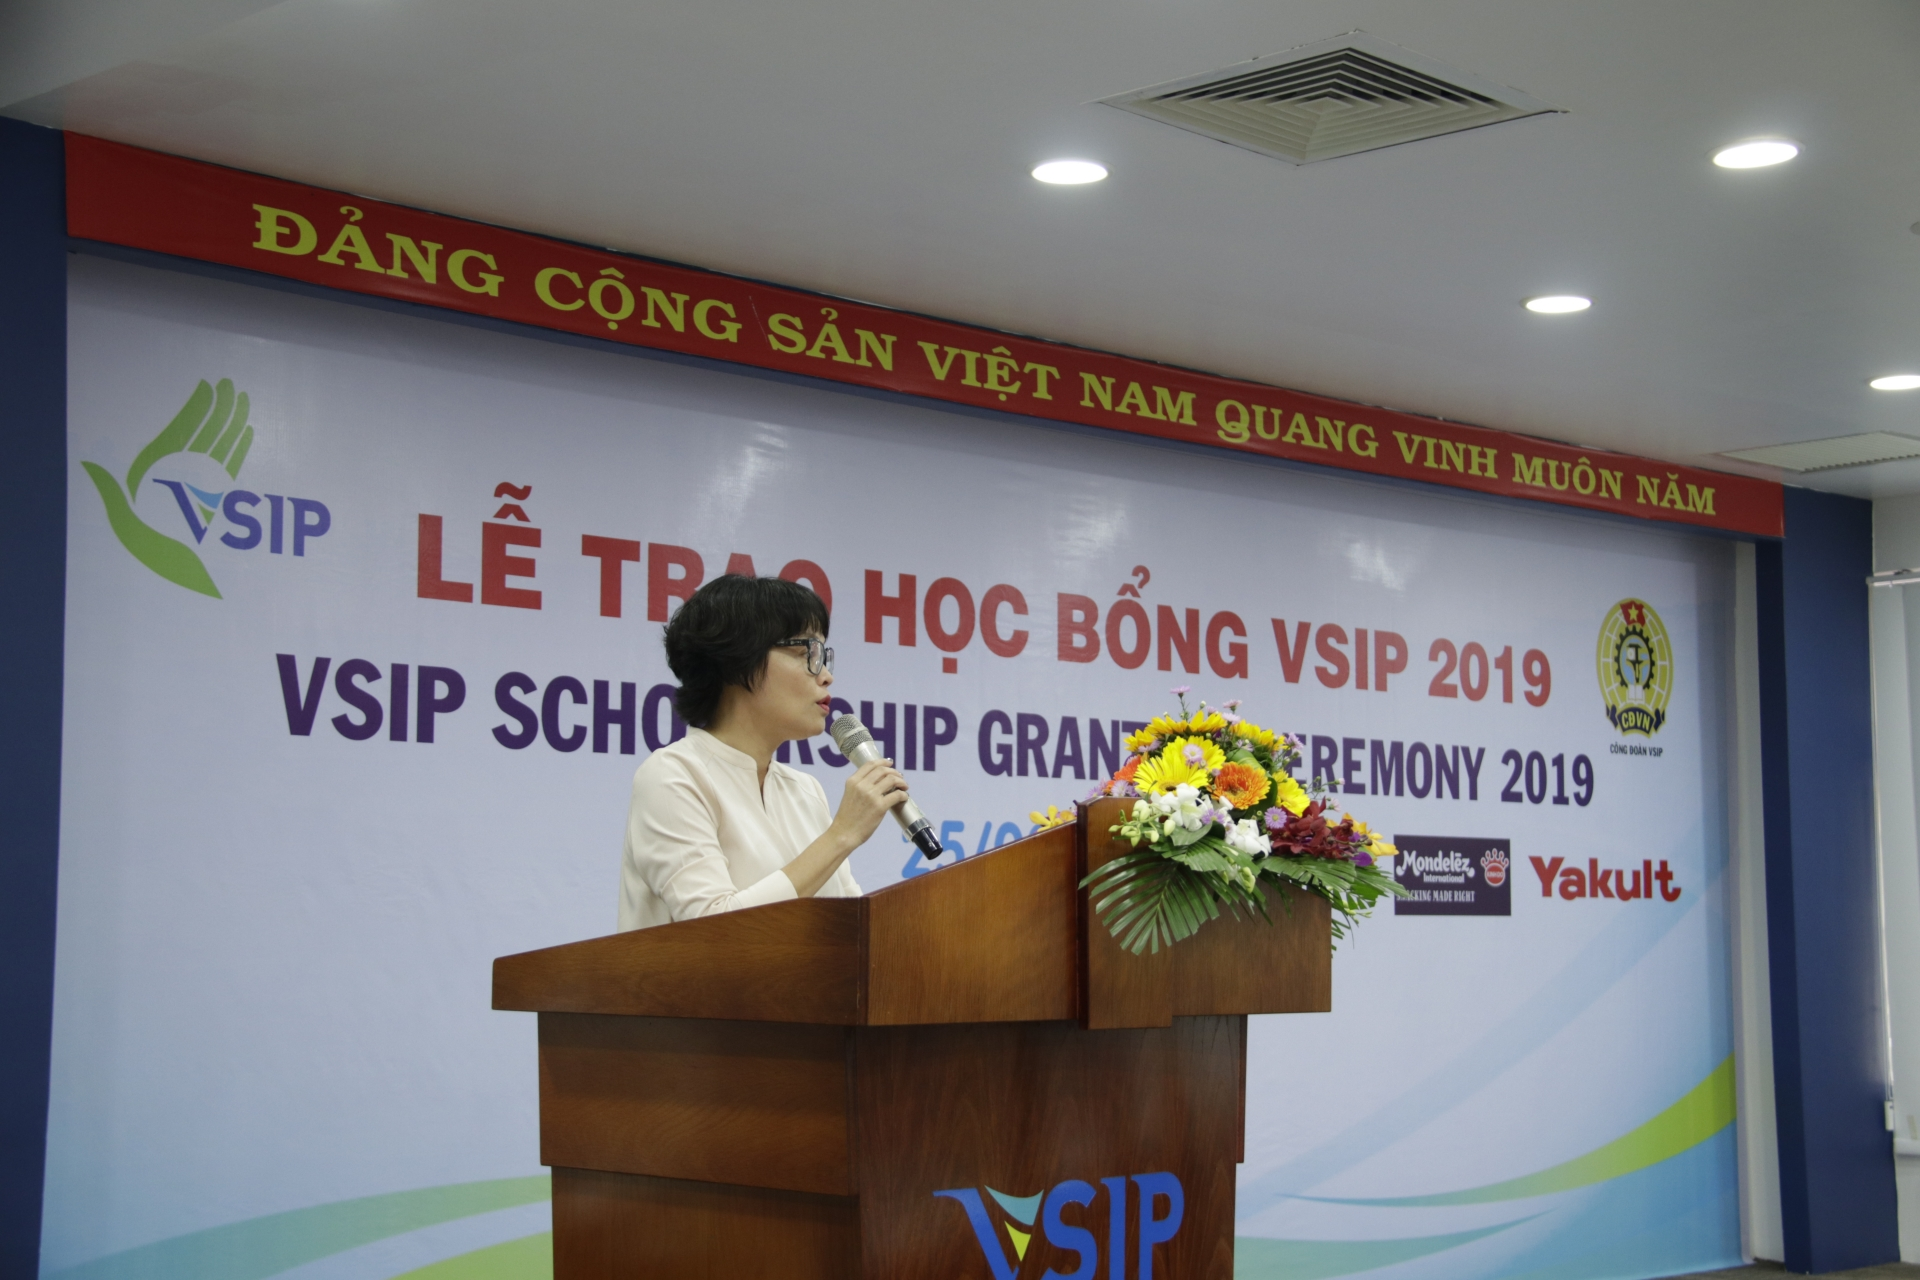 vsip charity fund grants 183 scholarships for students in binh duong